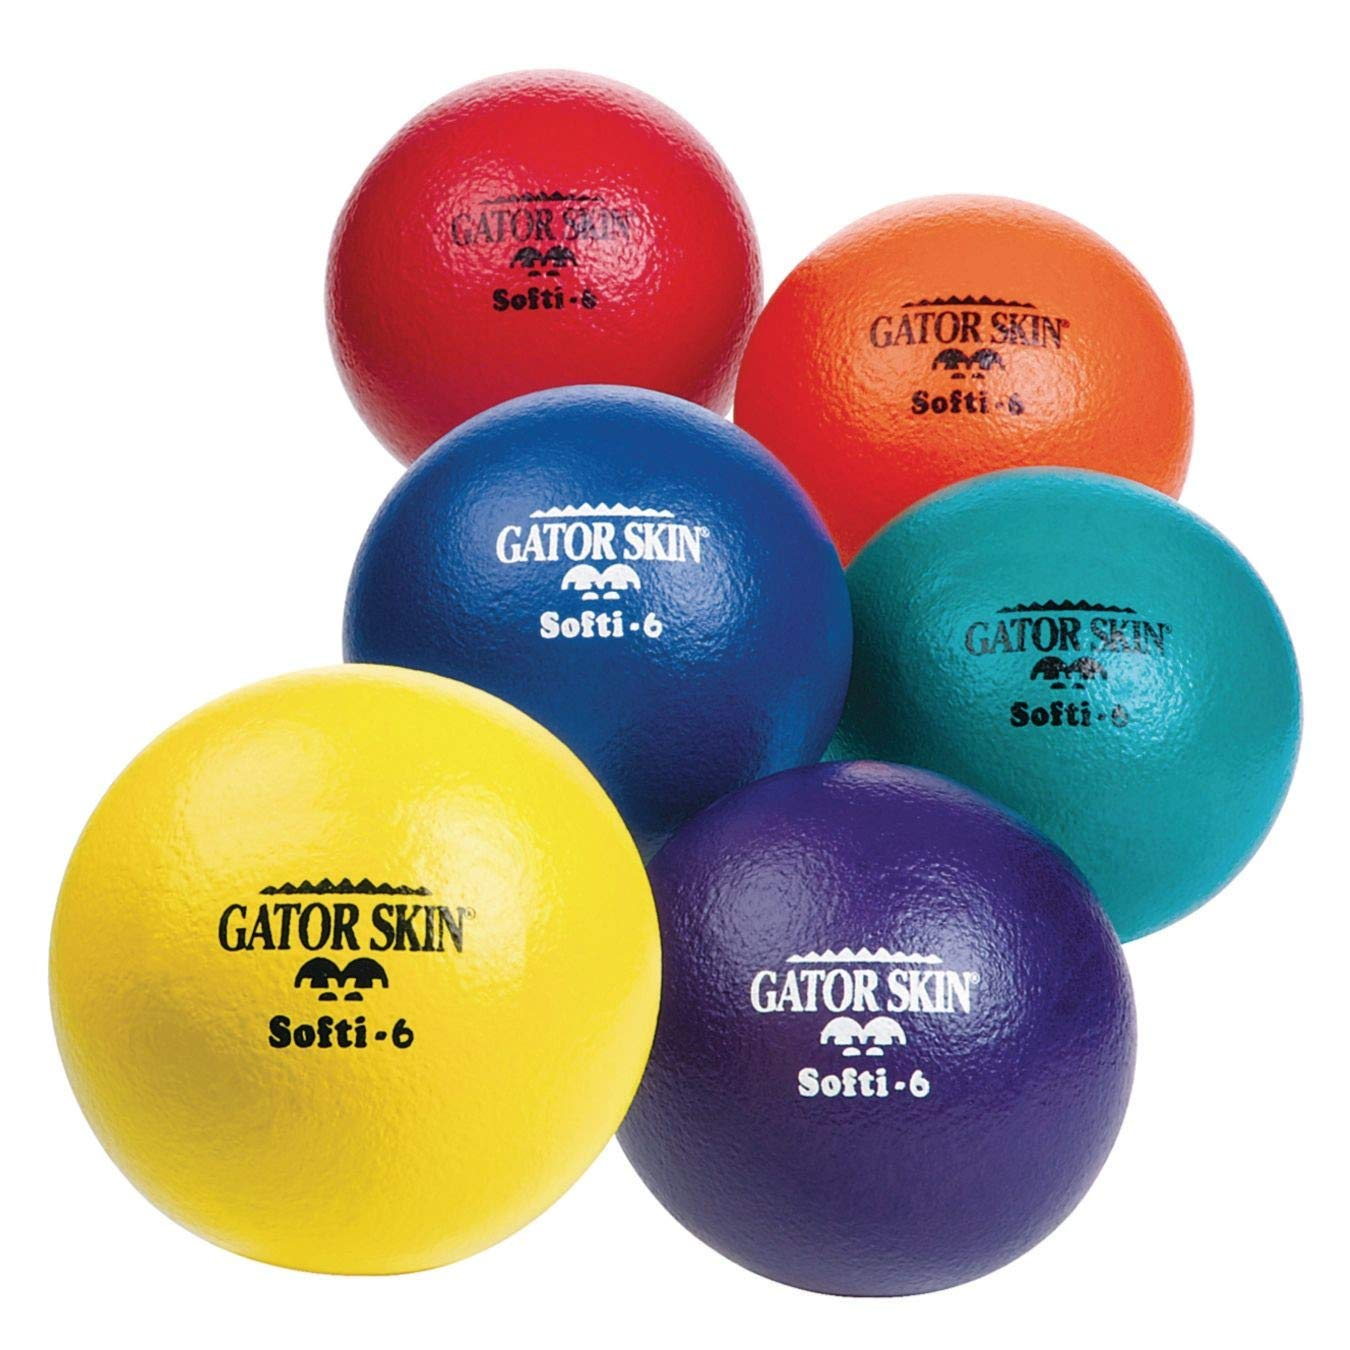 Gator Skin 6'' Softi Balls (Set of 6) by Gator Skin (Image #1)